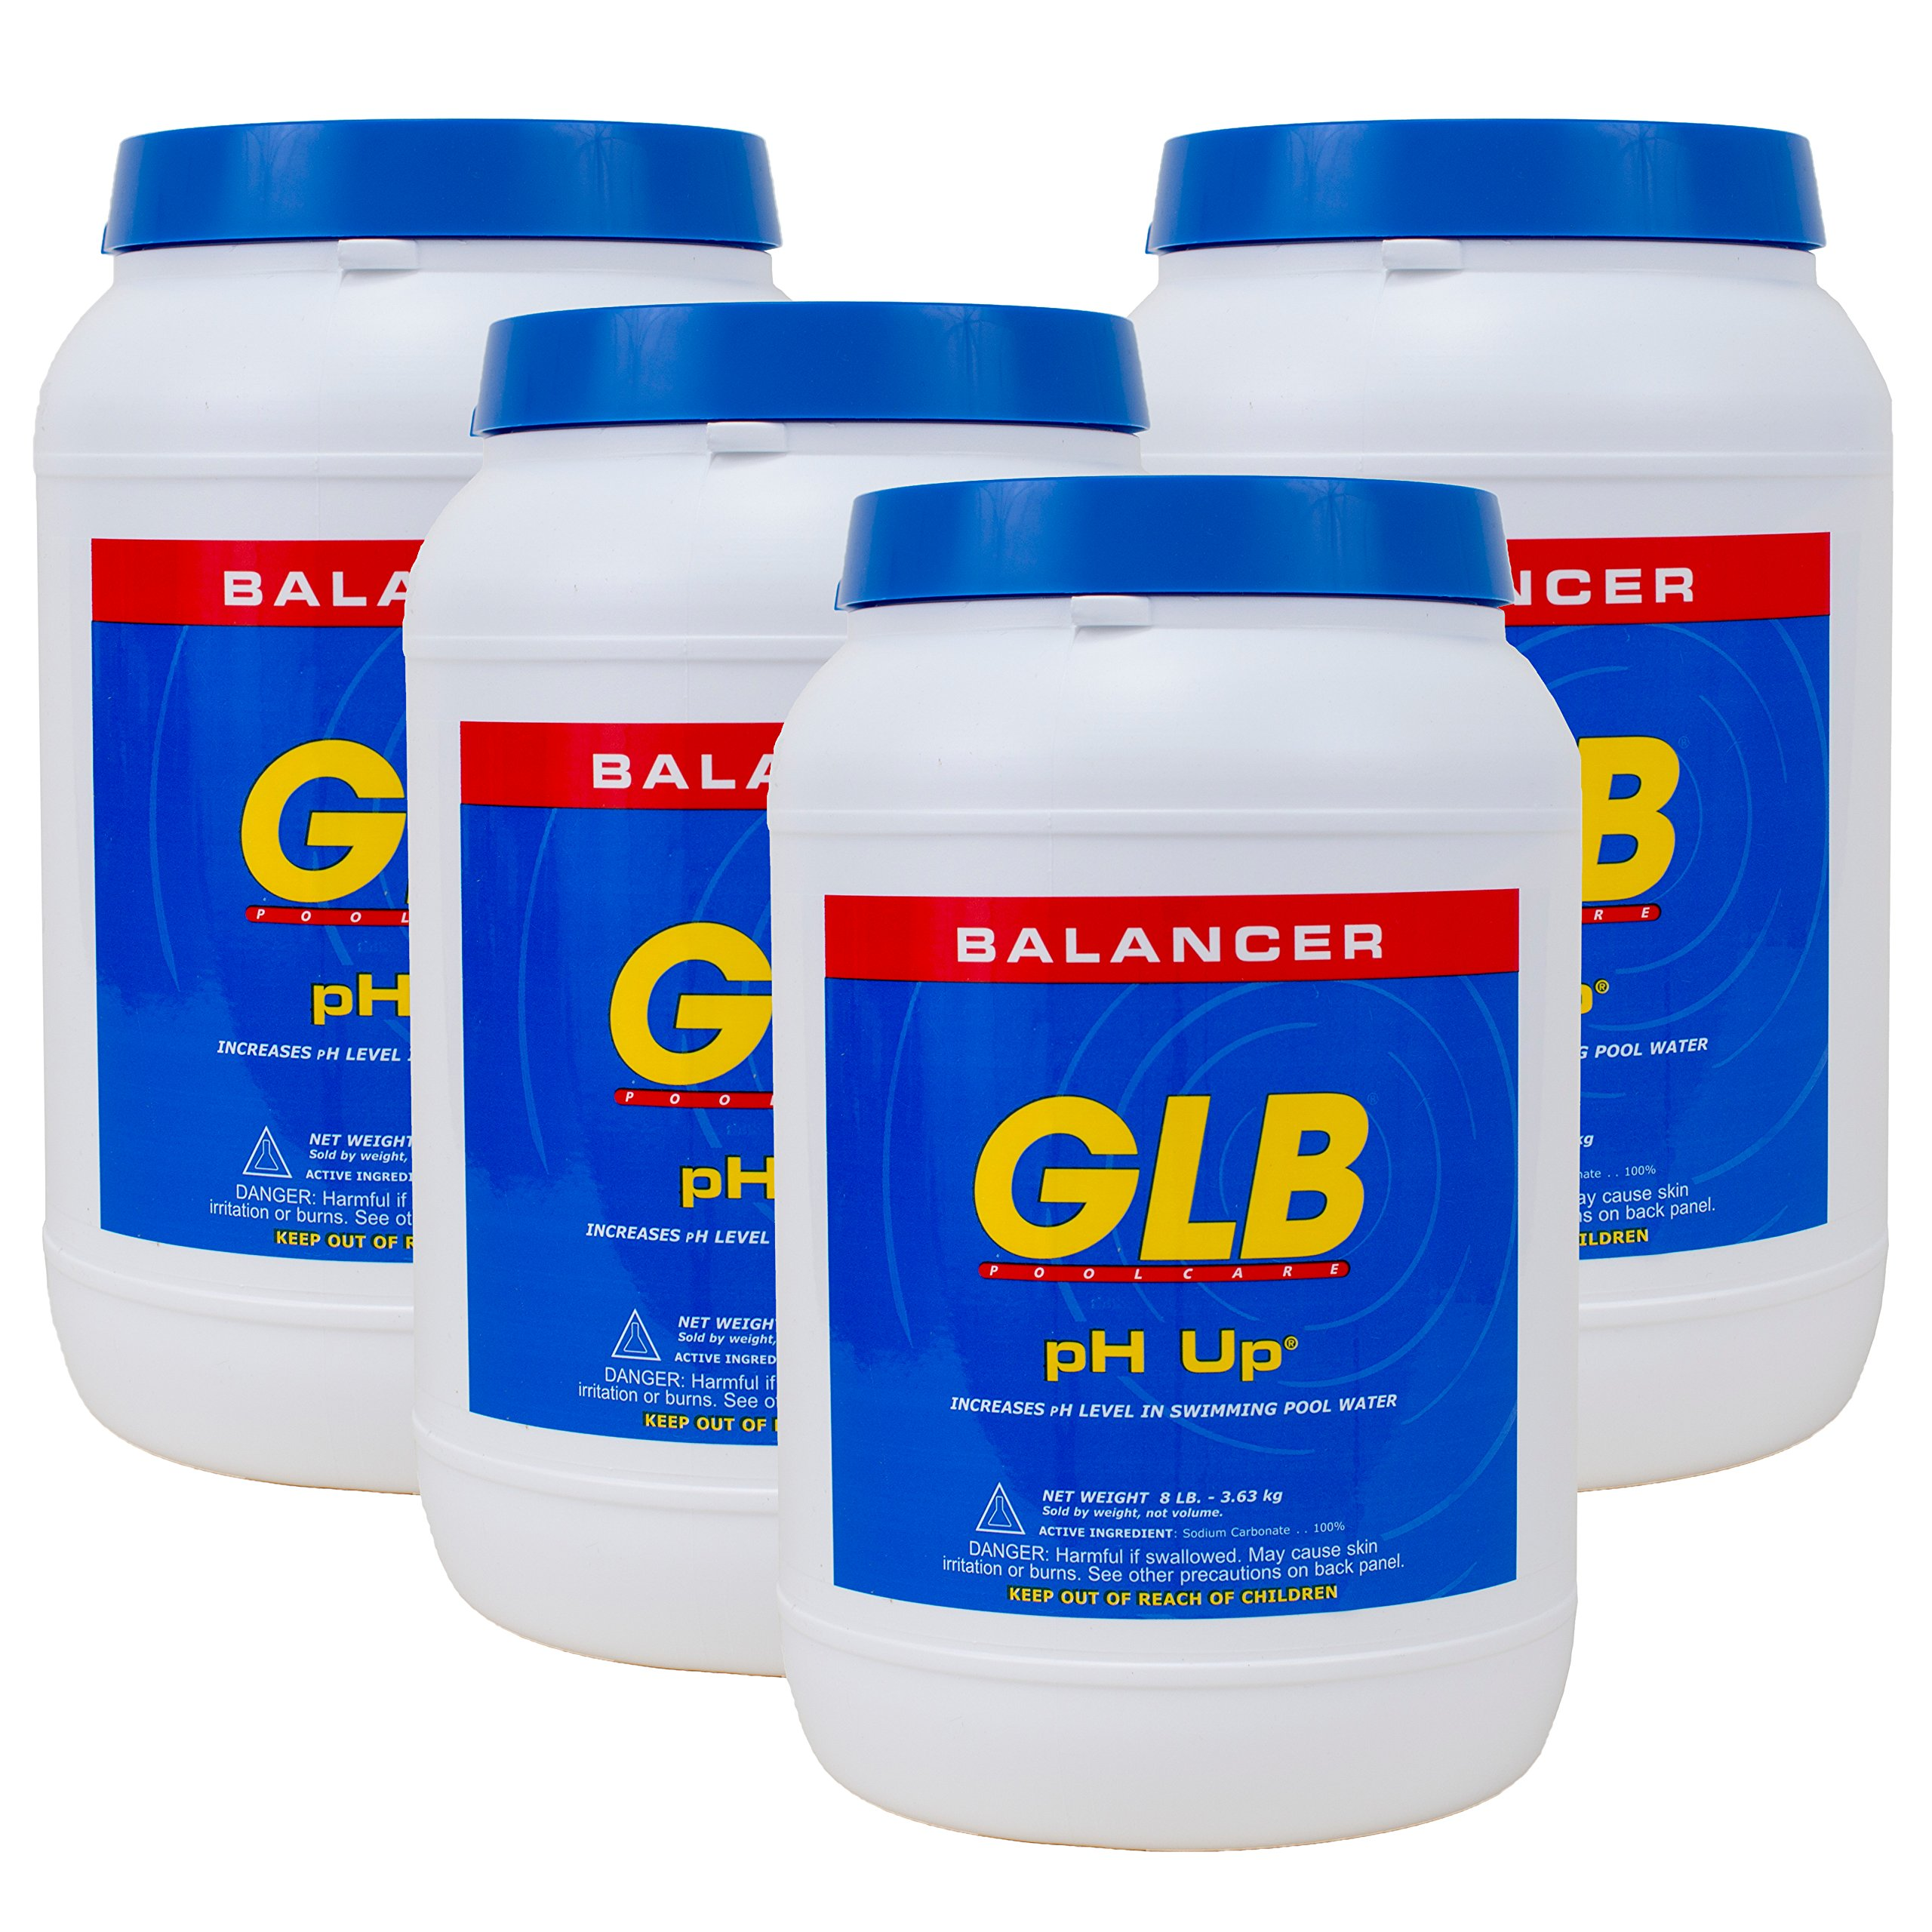 Ph Up Balncr Glb 8lb by GLB